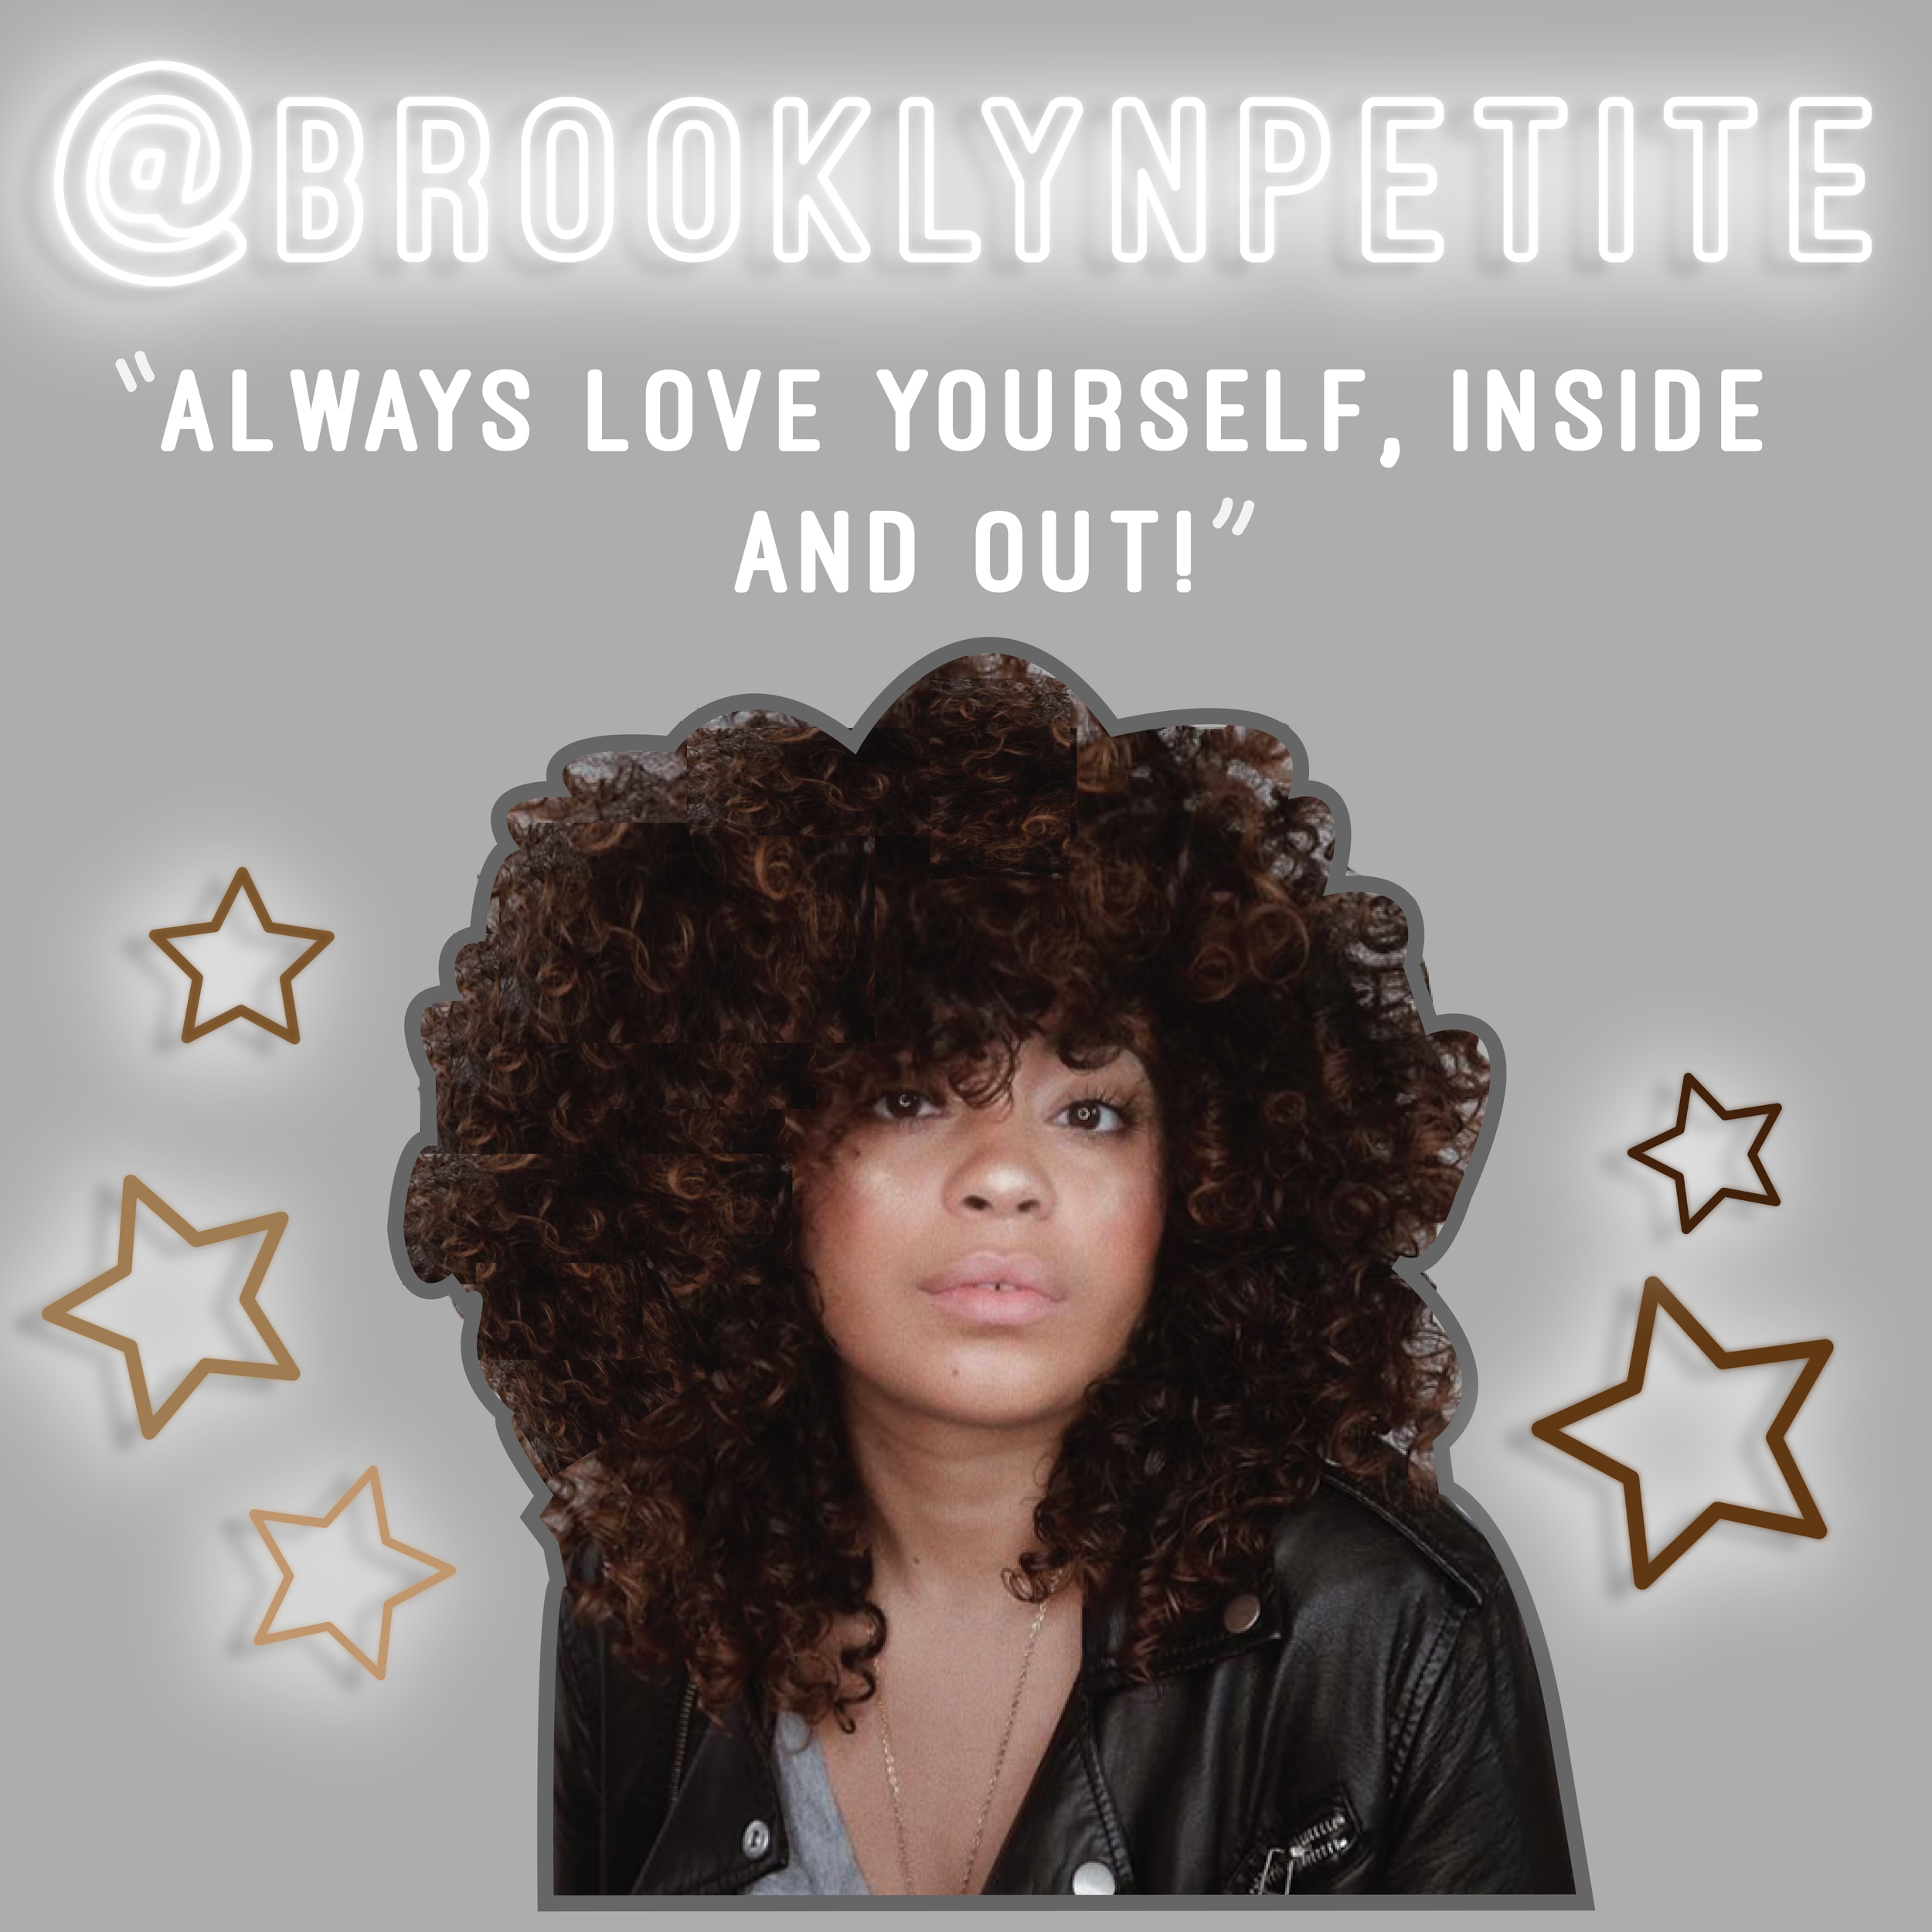 """""""Always love yourself first, inside and out. Growing up, I thought putting on makeup and straightening my hair was the only way I would ever get noticed. When I started taking better care of myself, I knew that all that crap I thought before was foolish, I'm beautiful no matter what.""""-  @Brooklynpetite"""